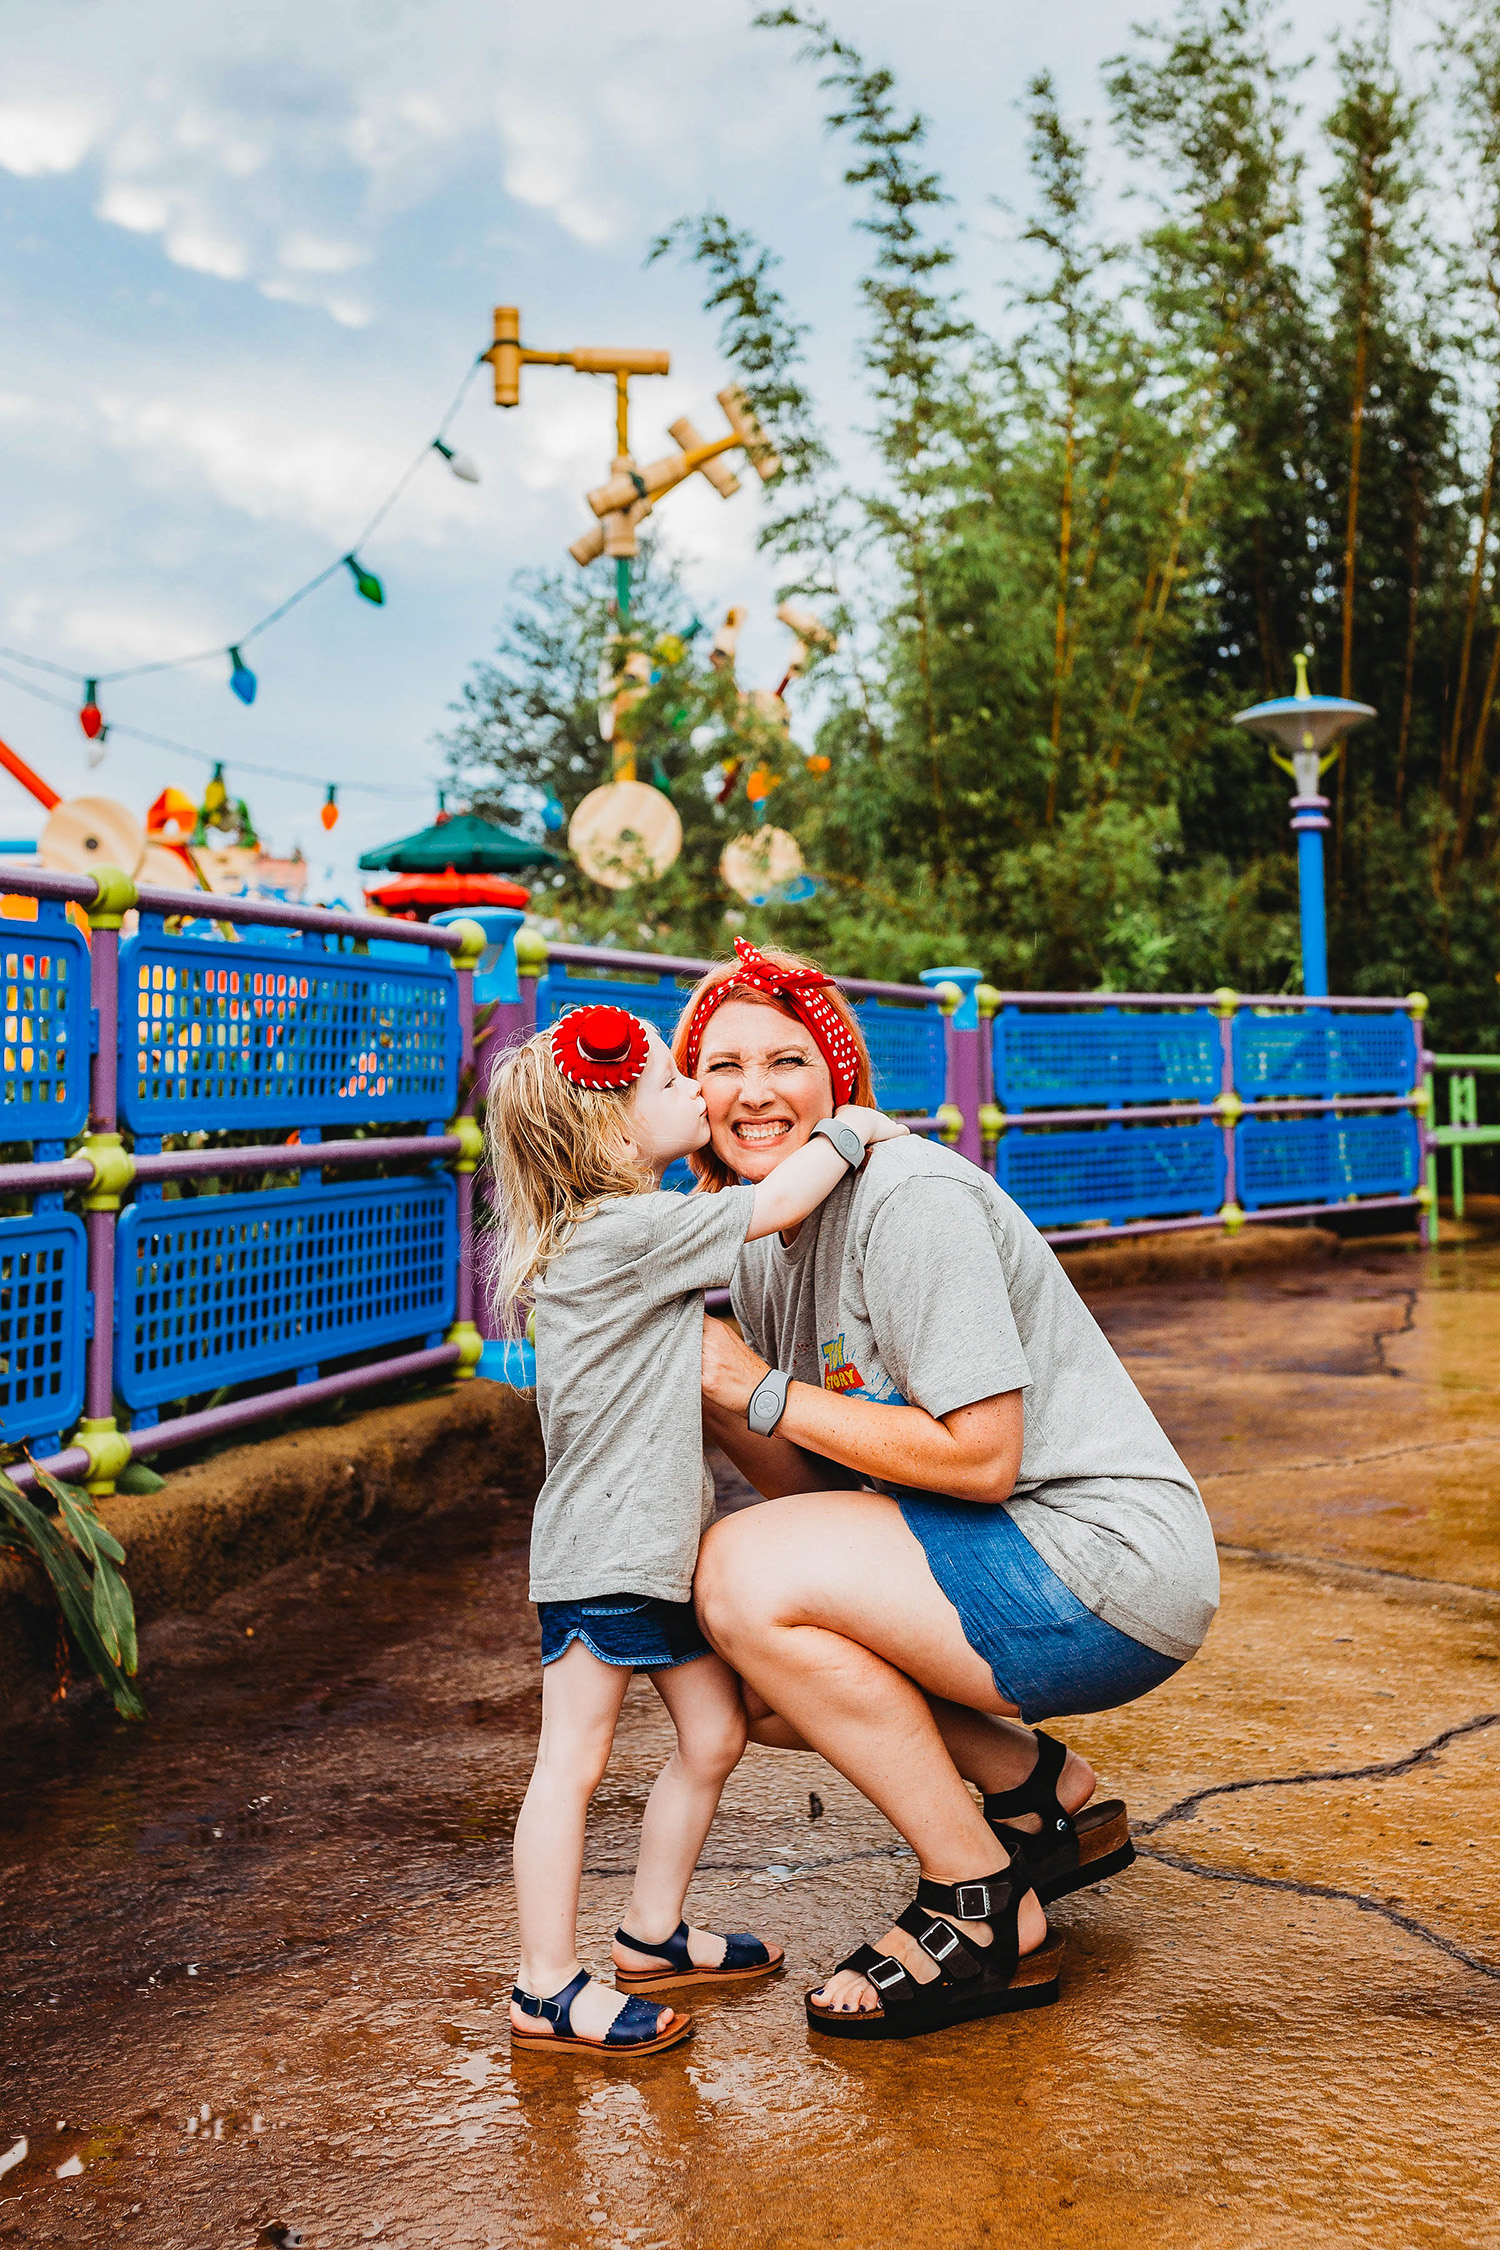 Looking for Easy Family Christmas Pictures Outfits ideas? I love the red and blue accents in this family outfit from Toy Story Land!